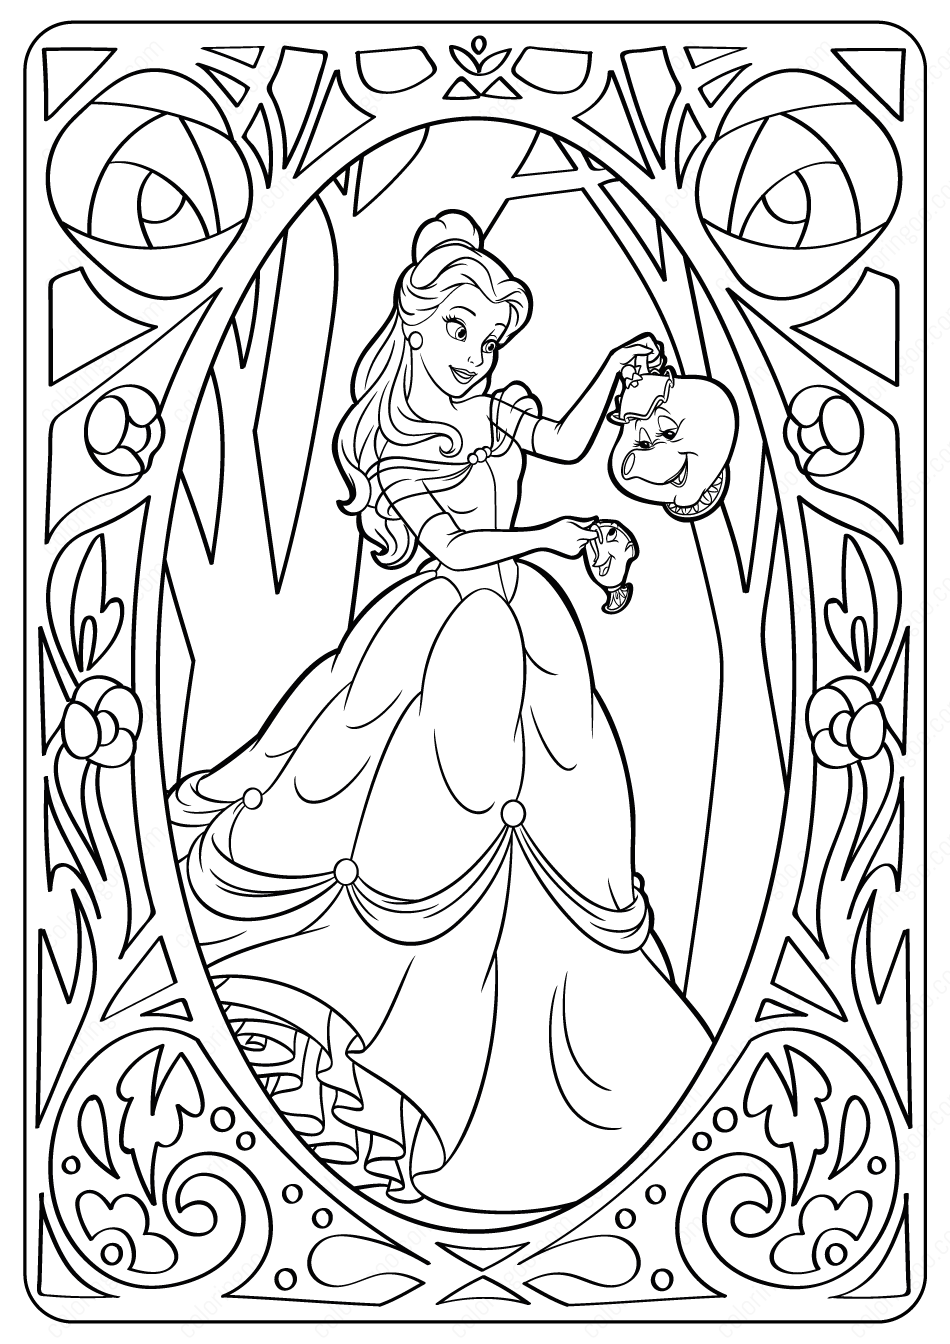 Disney Belle Pdf Coloring Pages Disney Princess Coloring Pages Disney Princess Colors Princess Coloring Pages